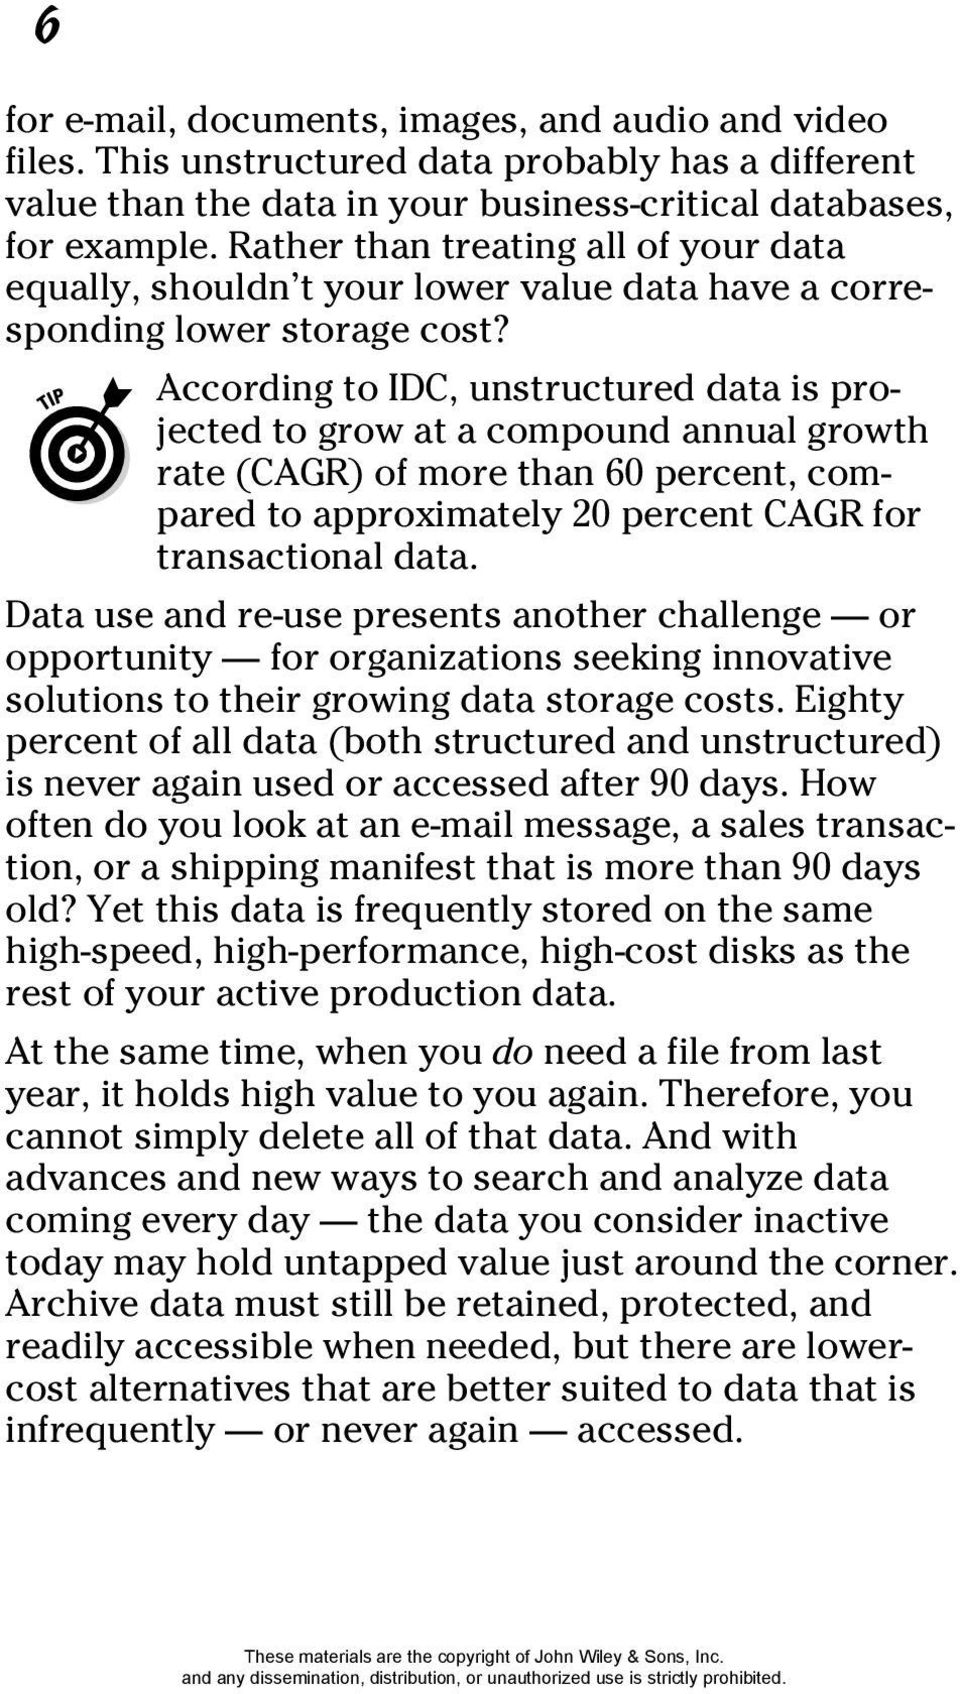 According to IDC, unstructured data is projected to grow at a compound annual growth rate (CAGR) of more than 60 percent, compared to approximately 20 percent CAGR for transactional data.